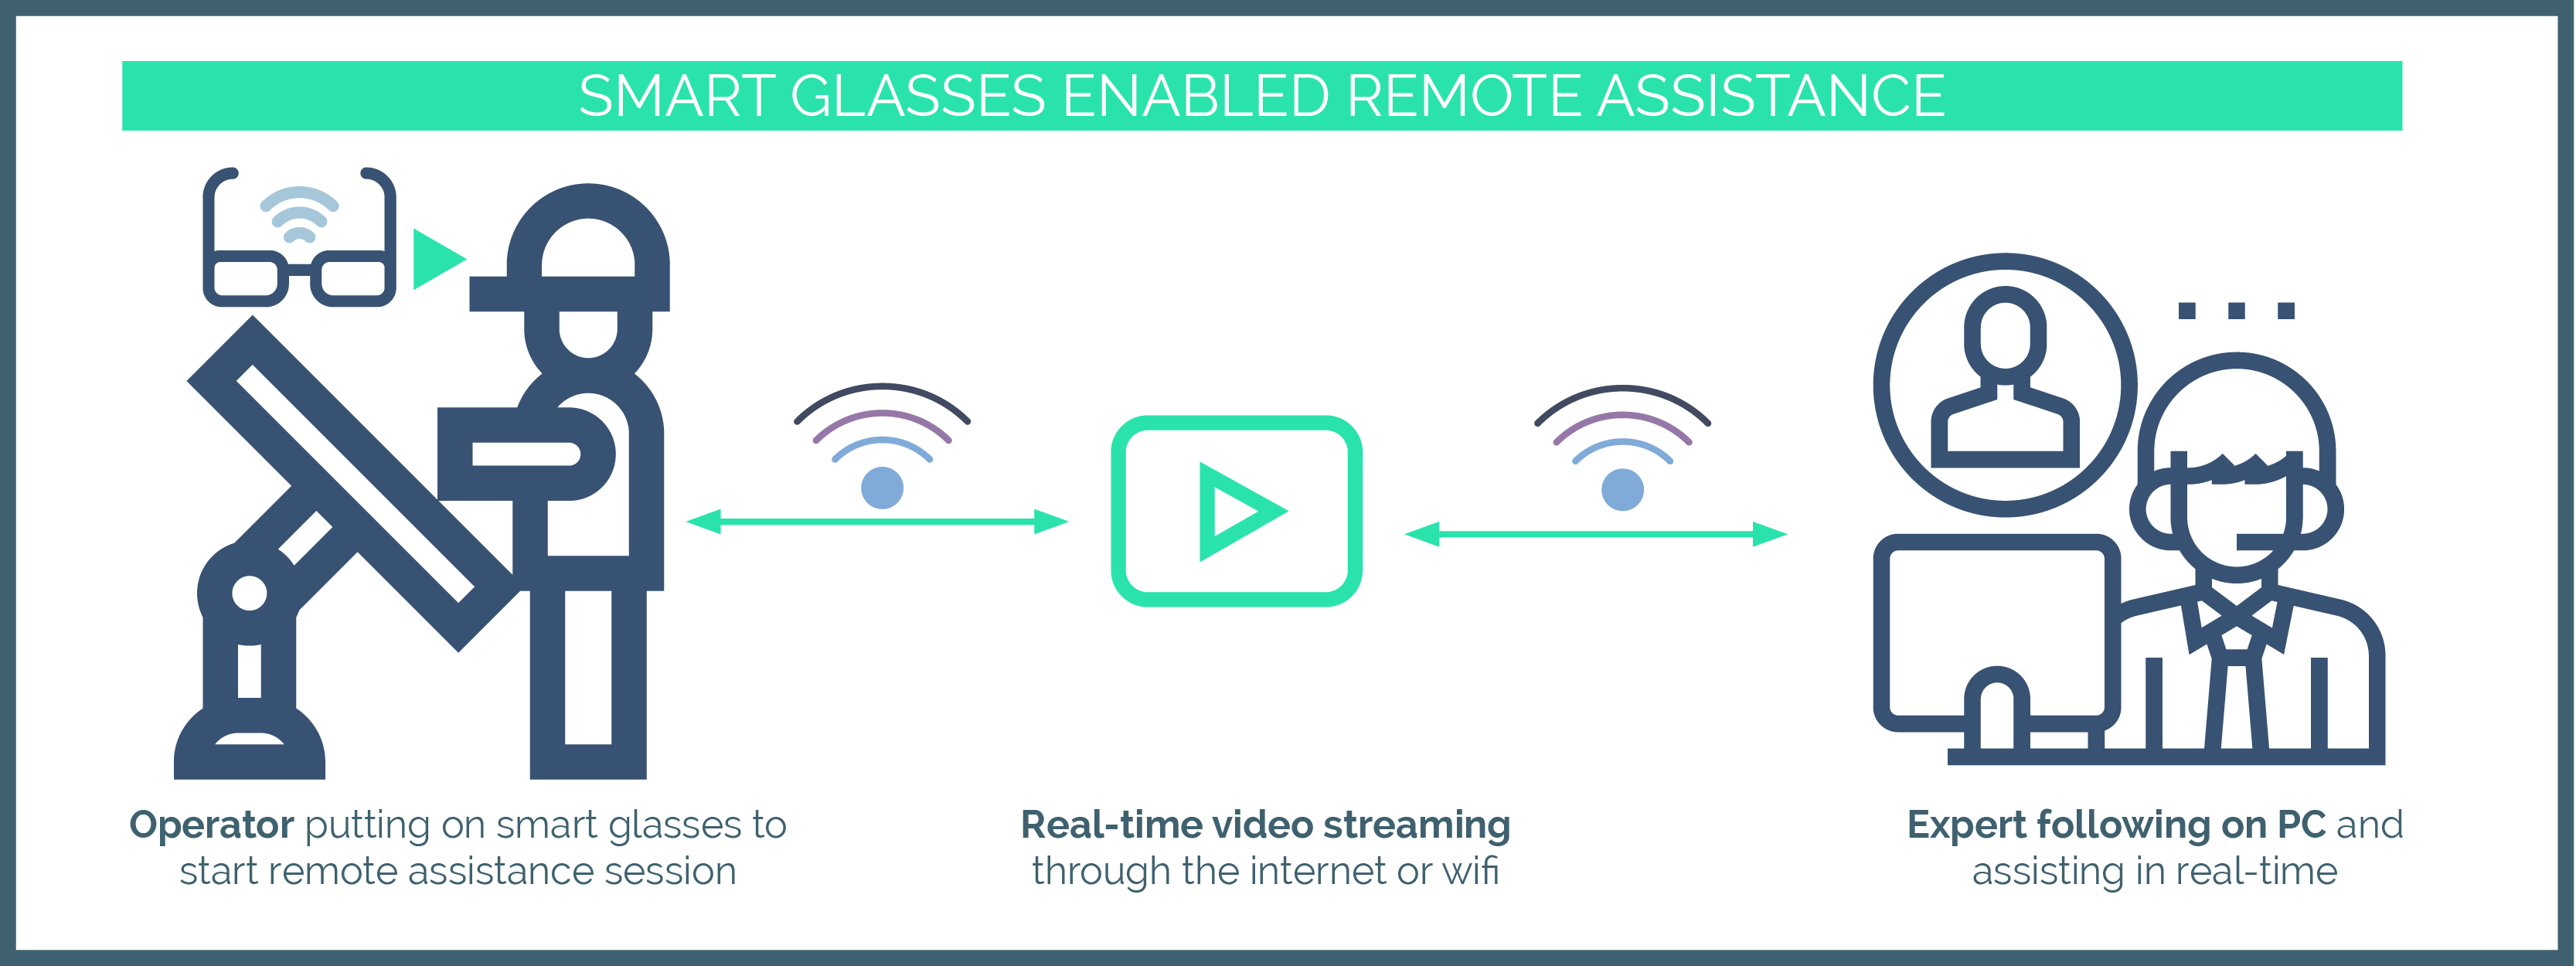 Remote assistance via smart glasses, remote collaboration in real-time